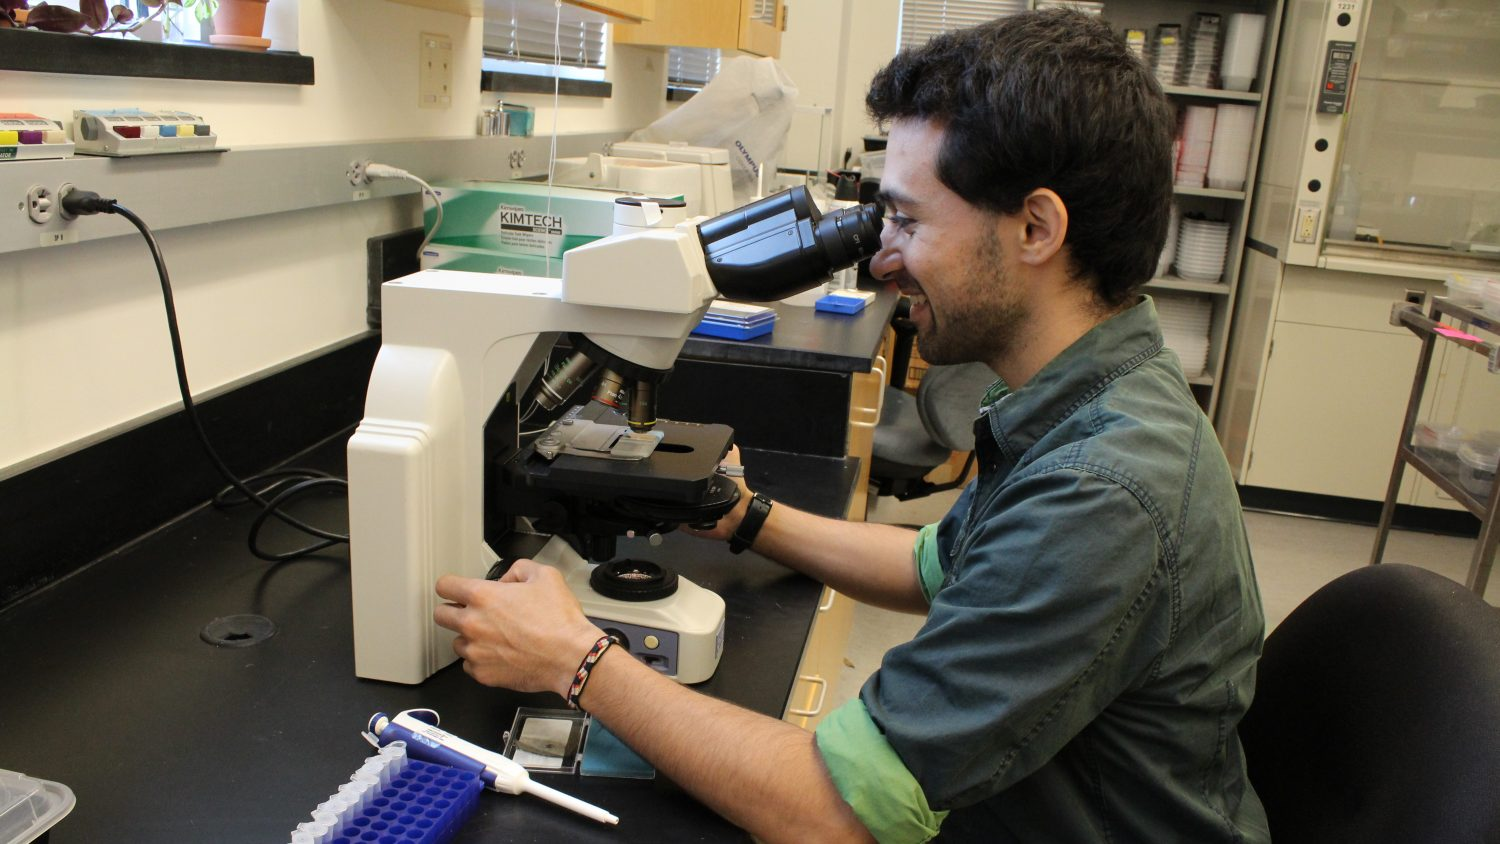 Man looking through a microscope in a lab